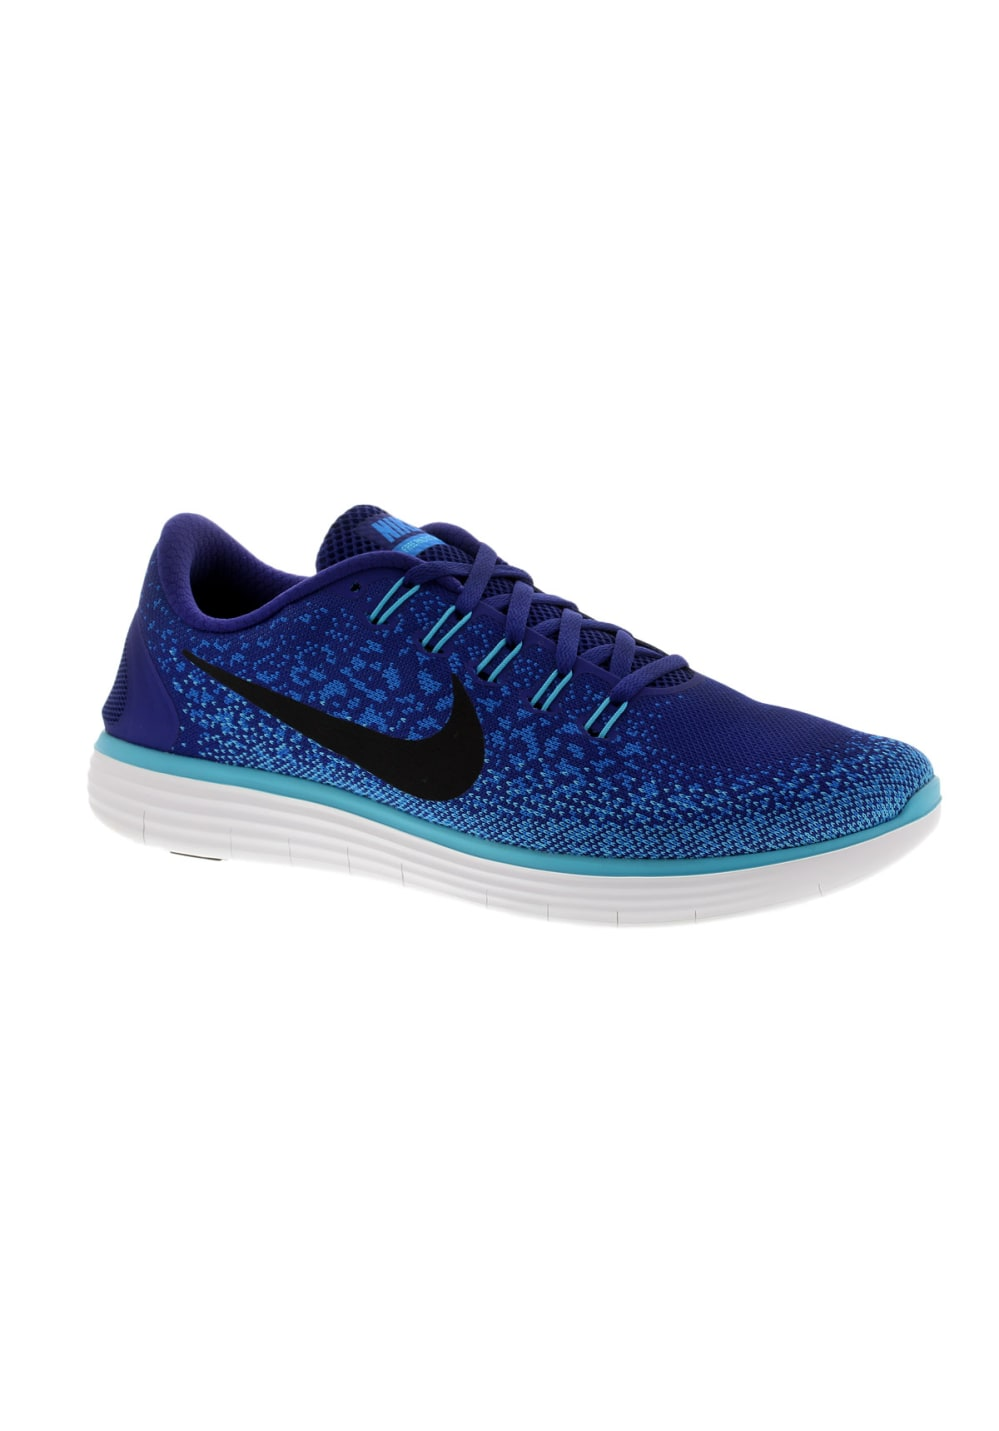 check out 362cc e6a81 Next. Nike. Free Run Distance - Running shoes for Men